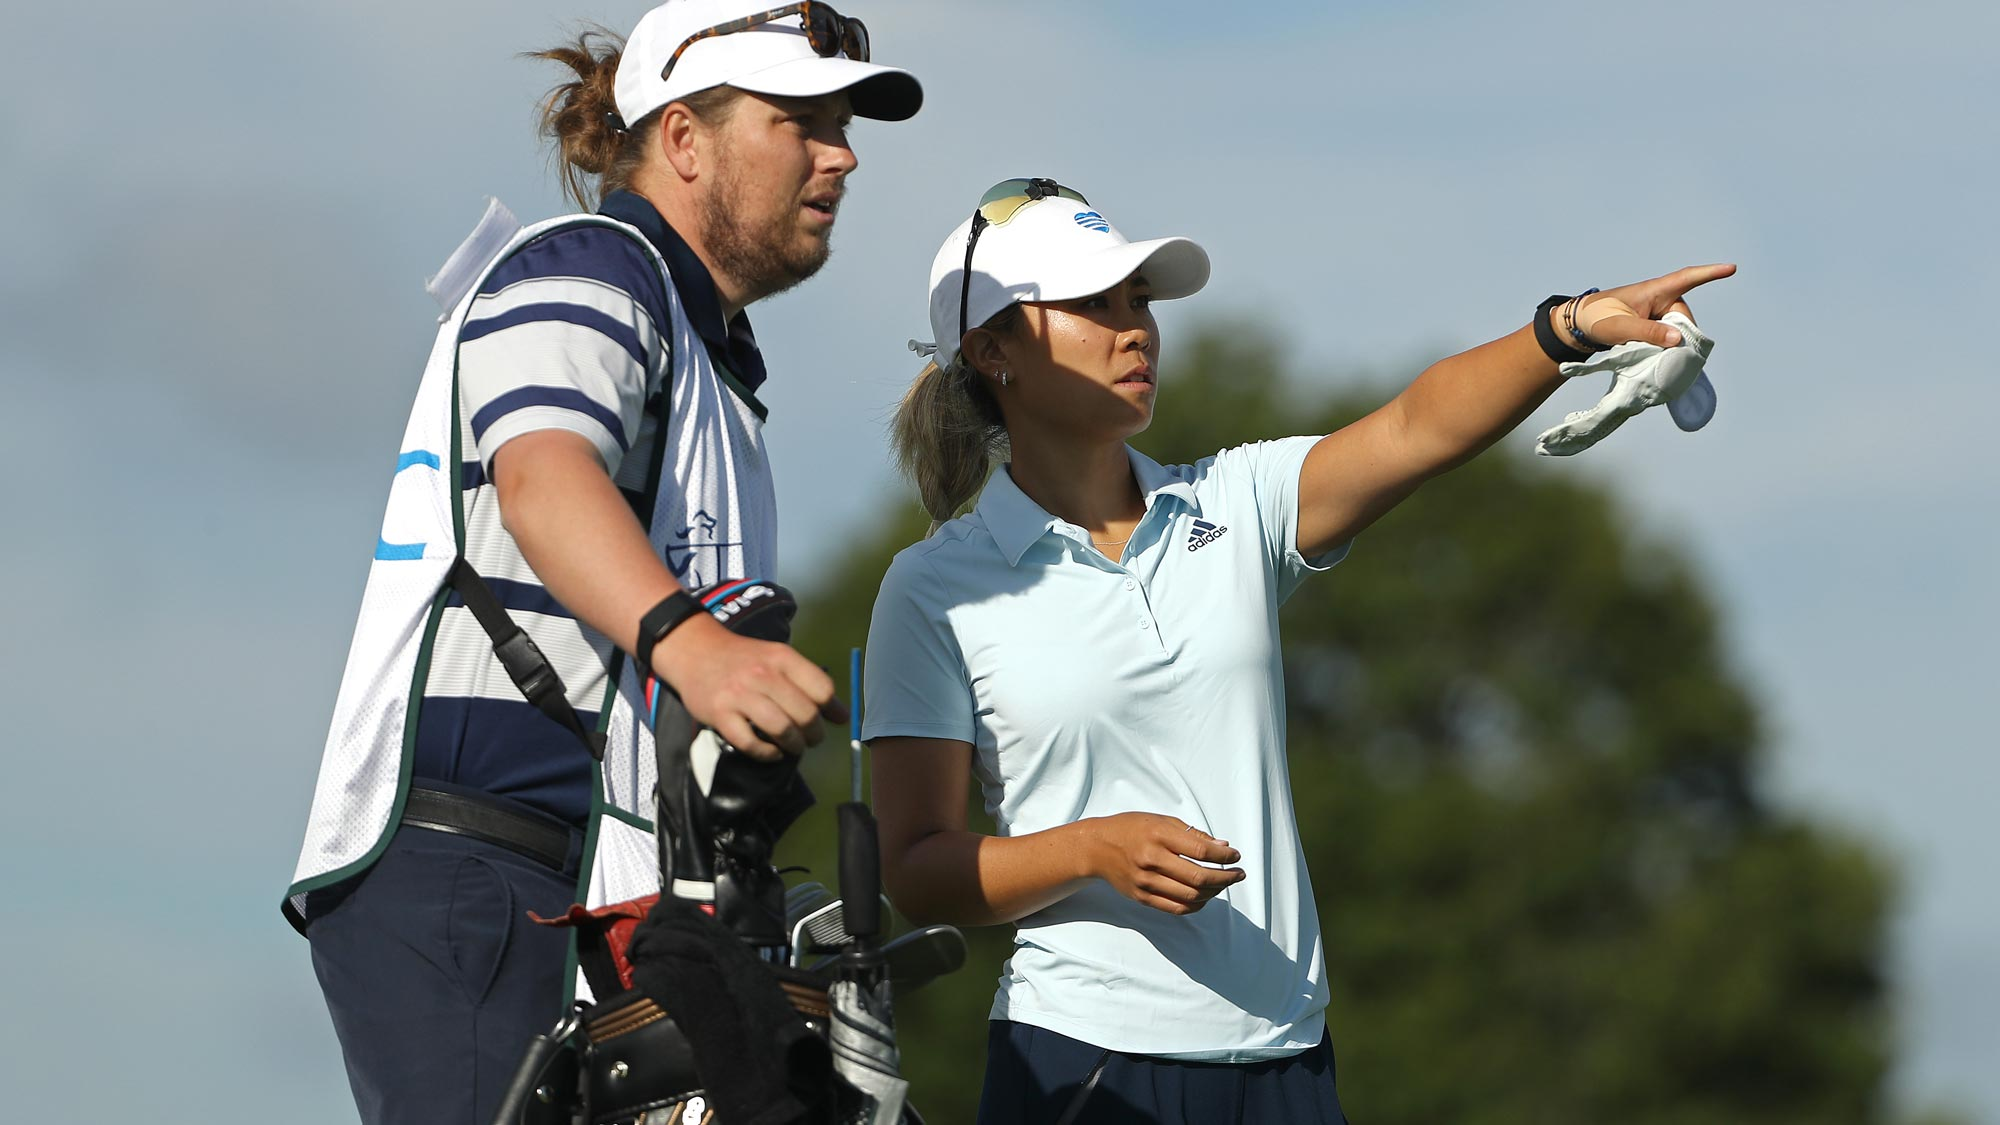 Danielle Kang prepares to play her shot from the 15th tee during the first round of the LPGA Drive On Championship